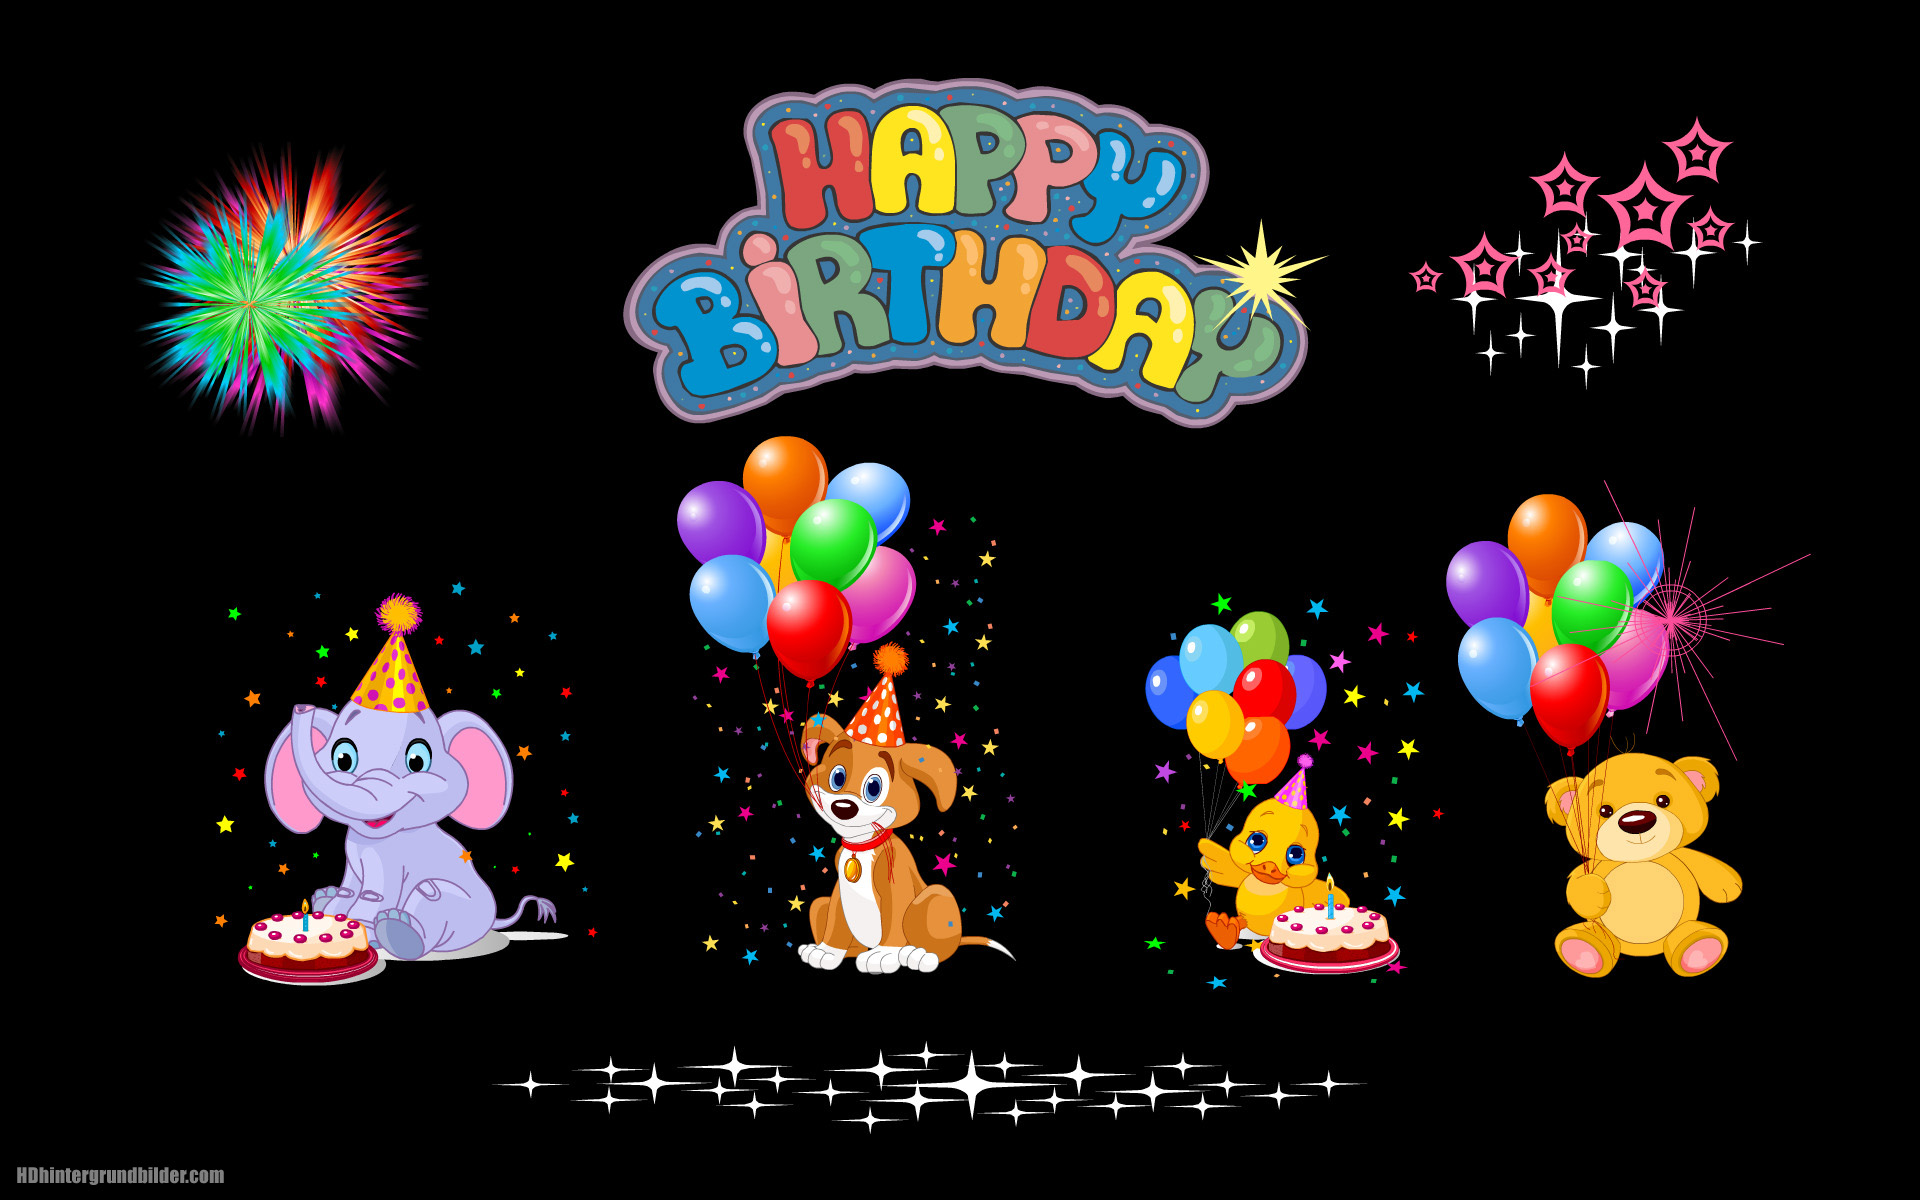 32580797279322820 further Pittsburgh Penguins Win Stanley Cup together with Tara Strong together with Diva Birthday Card Sassy Cartoon Cards in addition Sceptical Squirrel. on old happy birthday cartoons